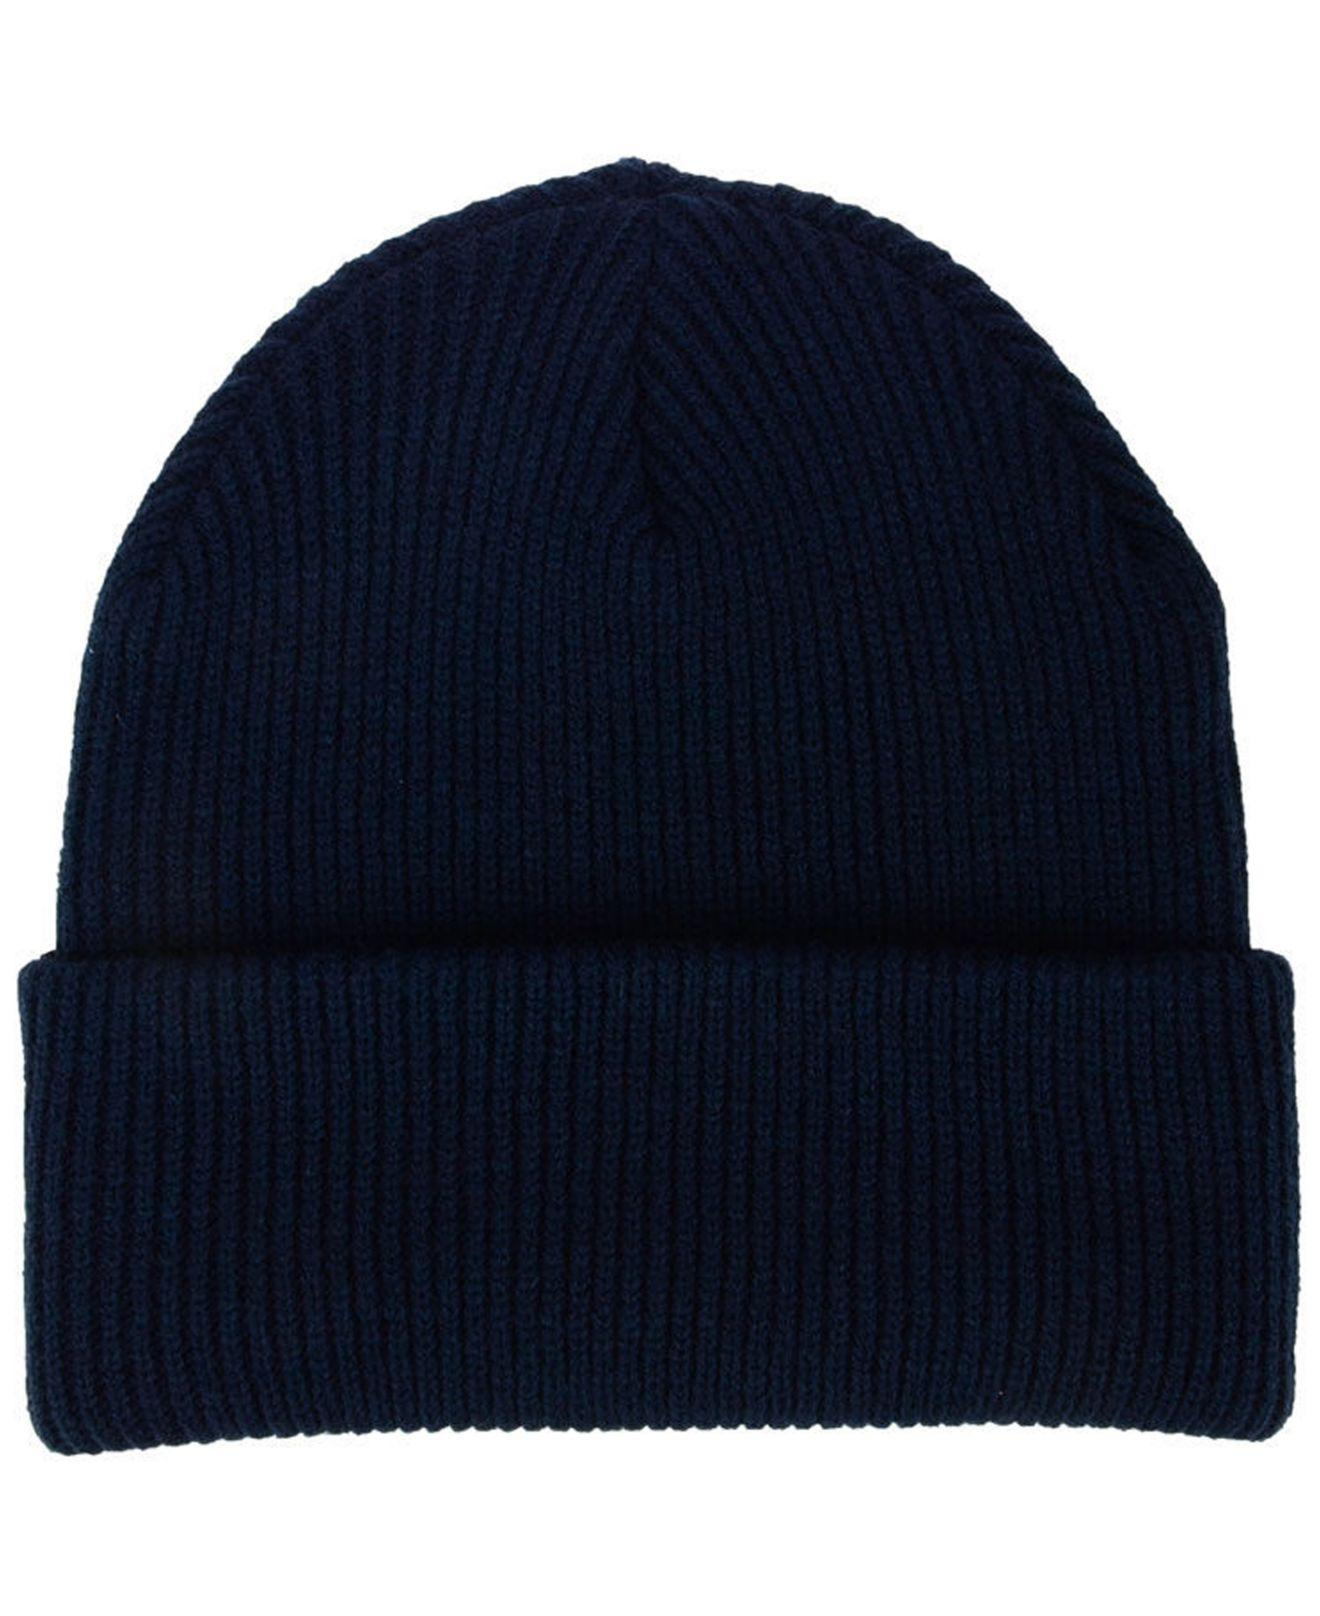 new product 79596 8387f ... new style lyst 47 brand chicago bears ice block cuff knit hat in blue  for men